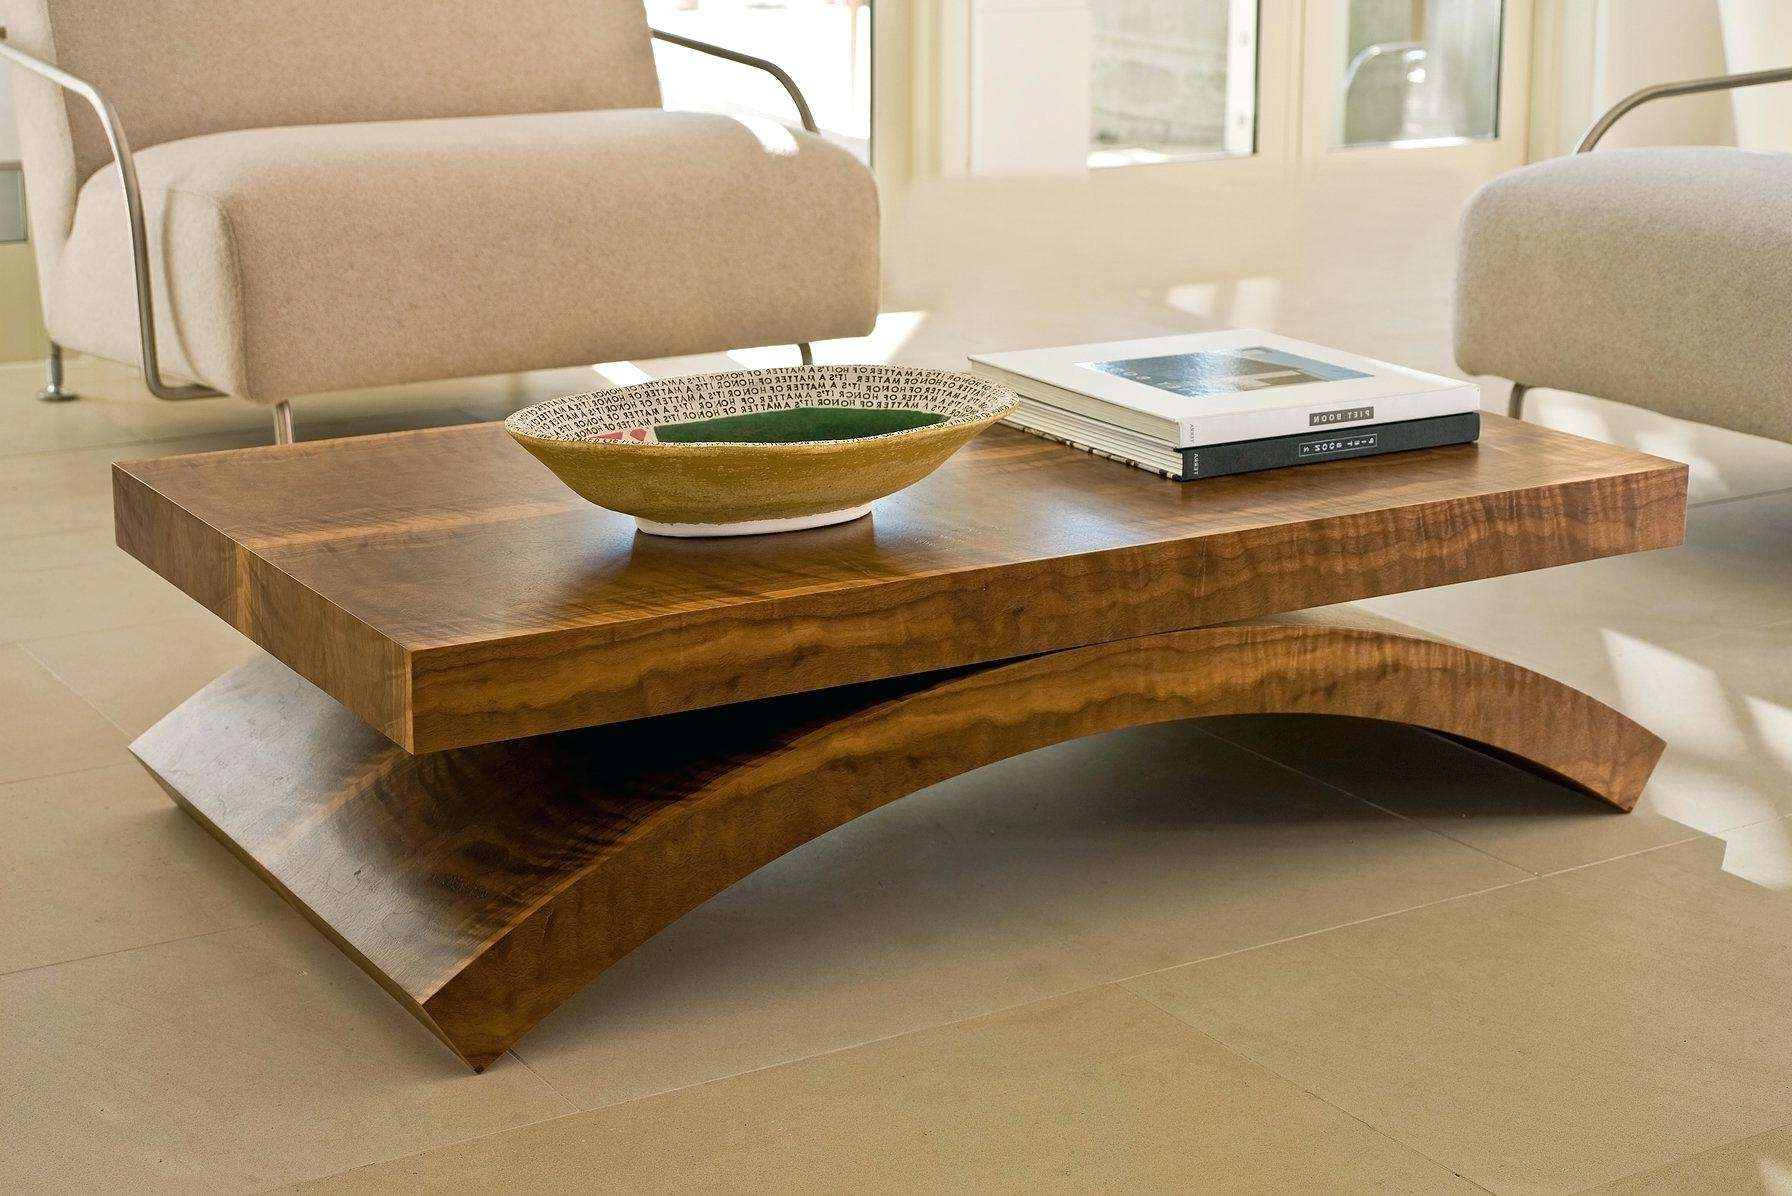 2018 Large Low Oak Coffee Tables Intended For Coffee Tables : Interior Furniture Gorgeous Square Coffee Table (View 11 of 20)